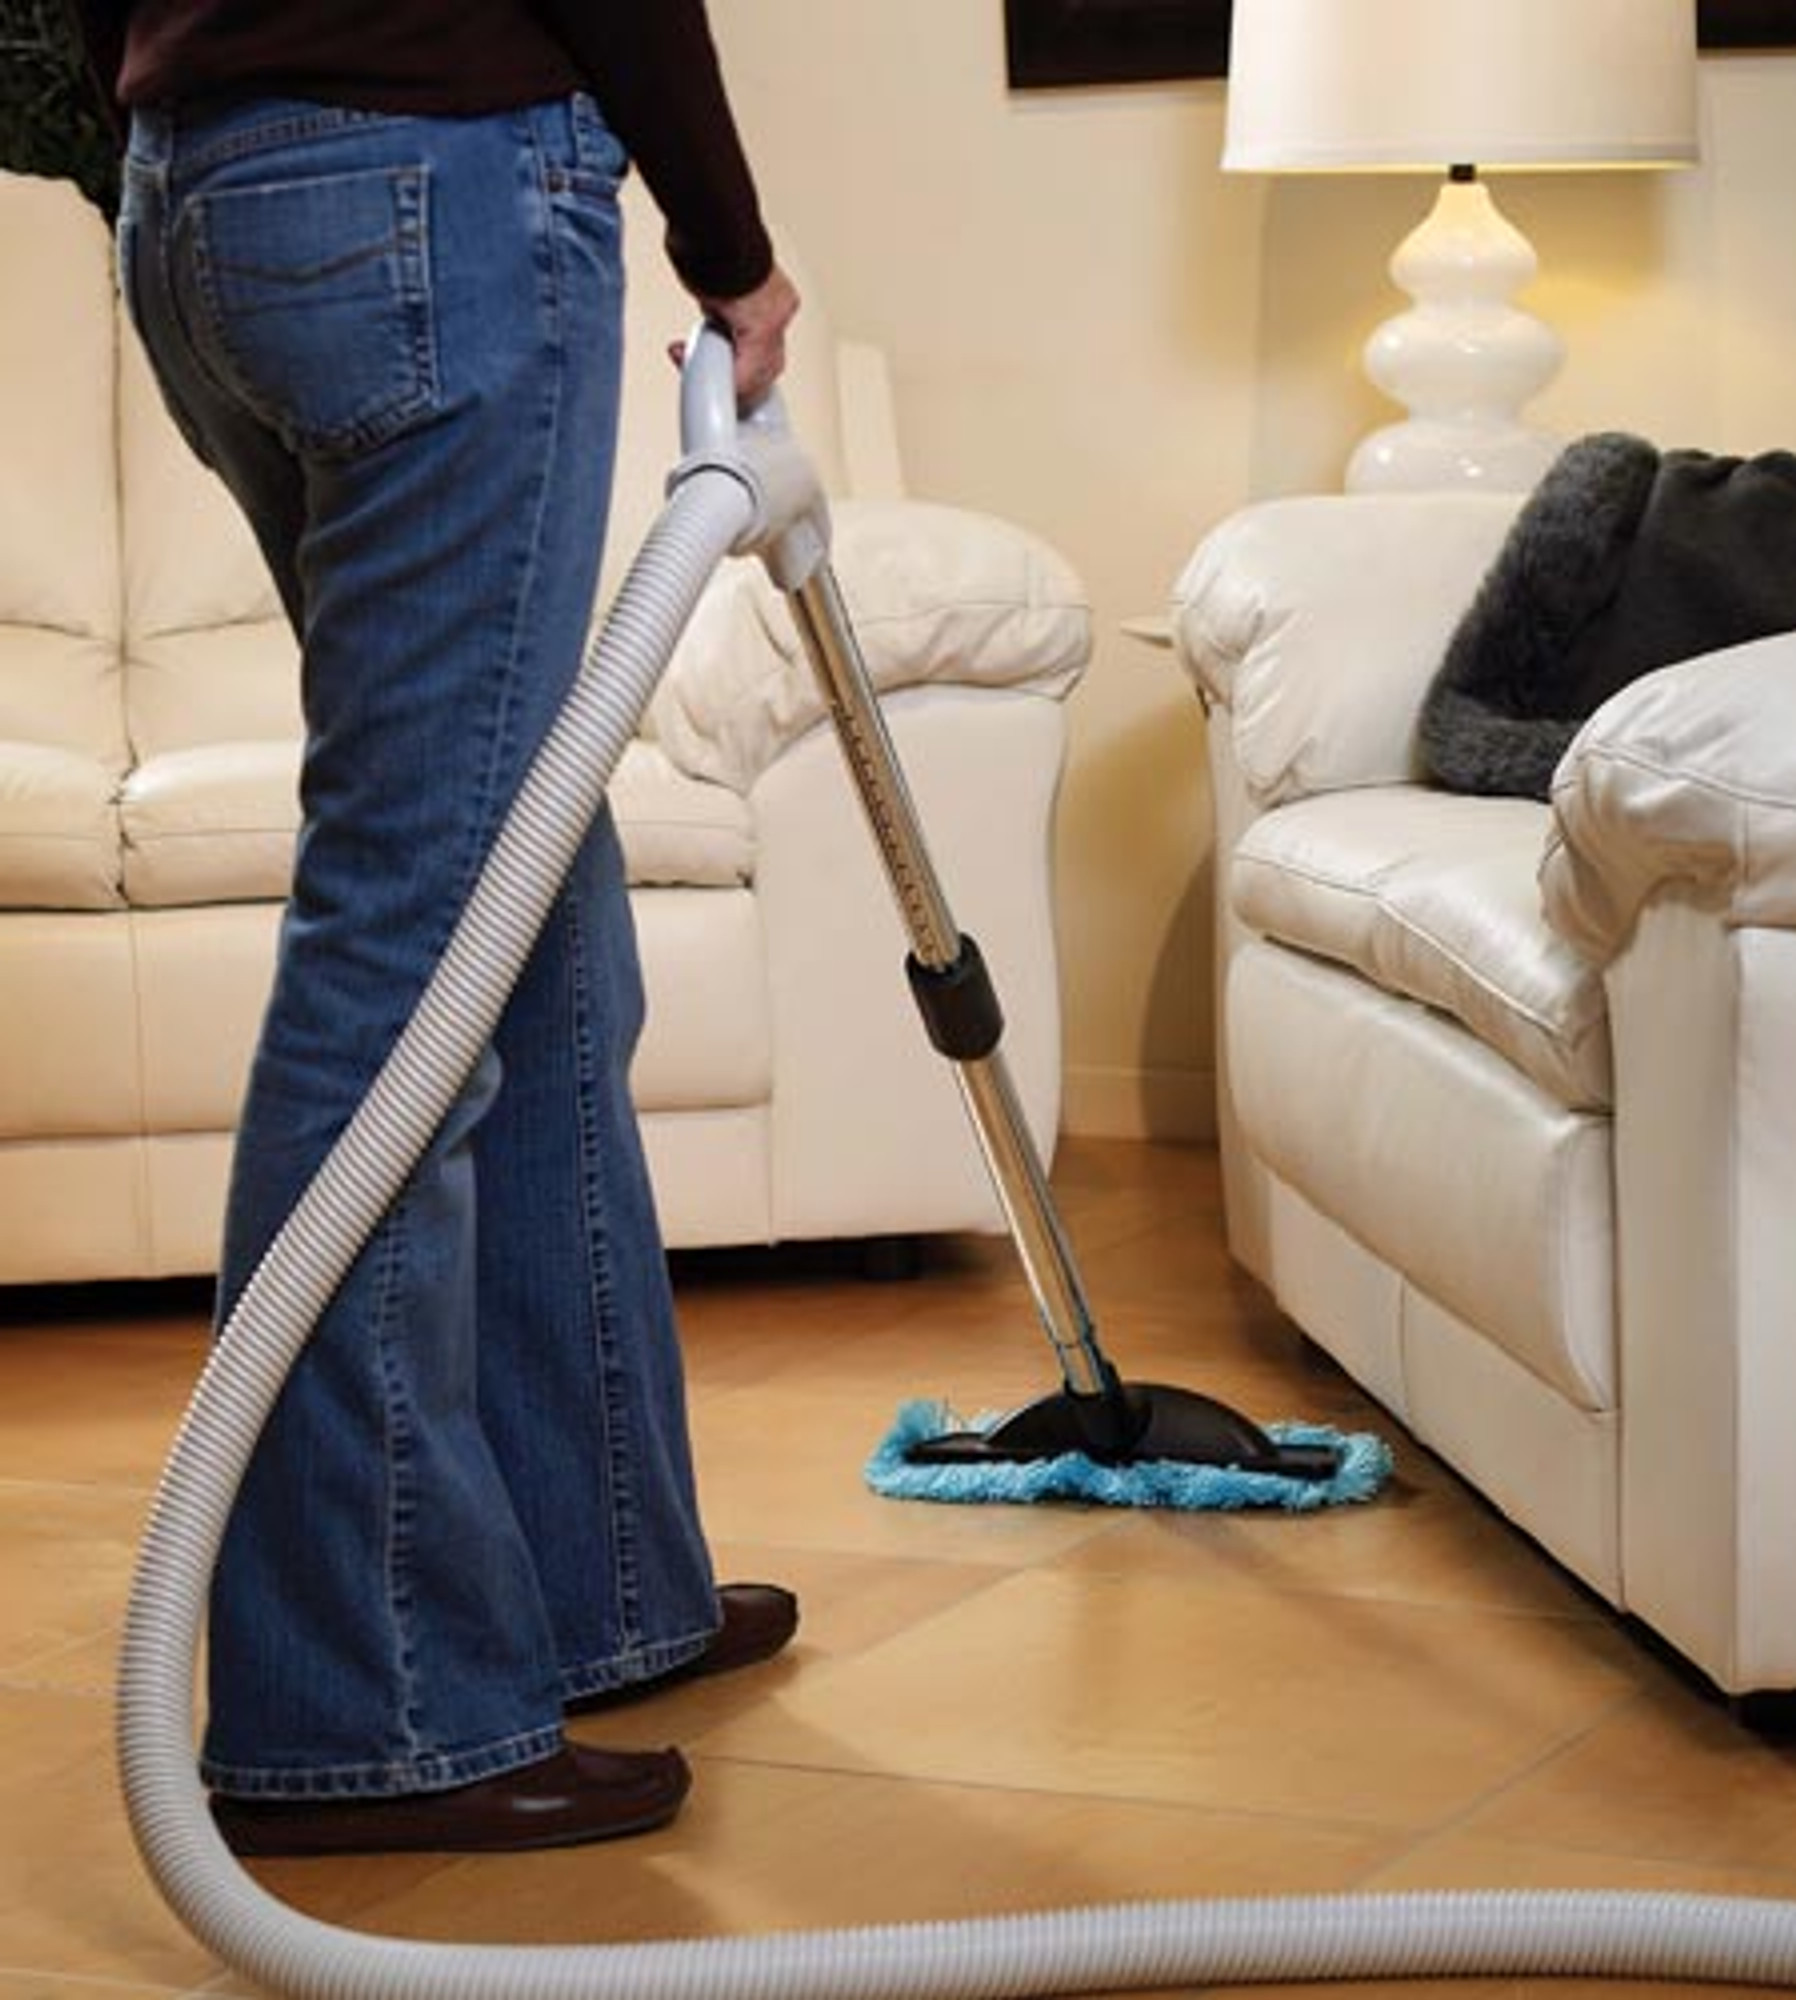 Buy Vacuum Cleaner Dust Mop Attachment Fit All Size